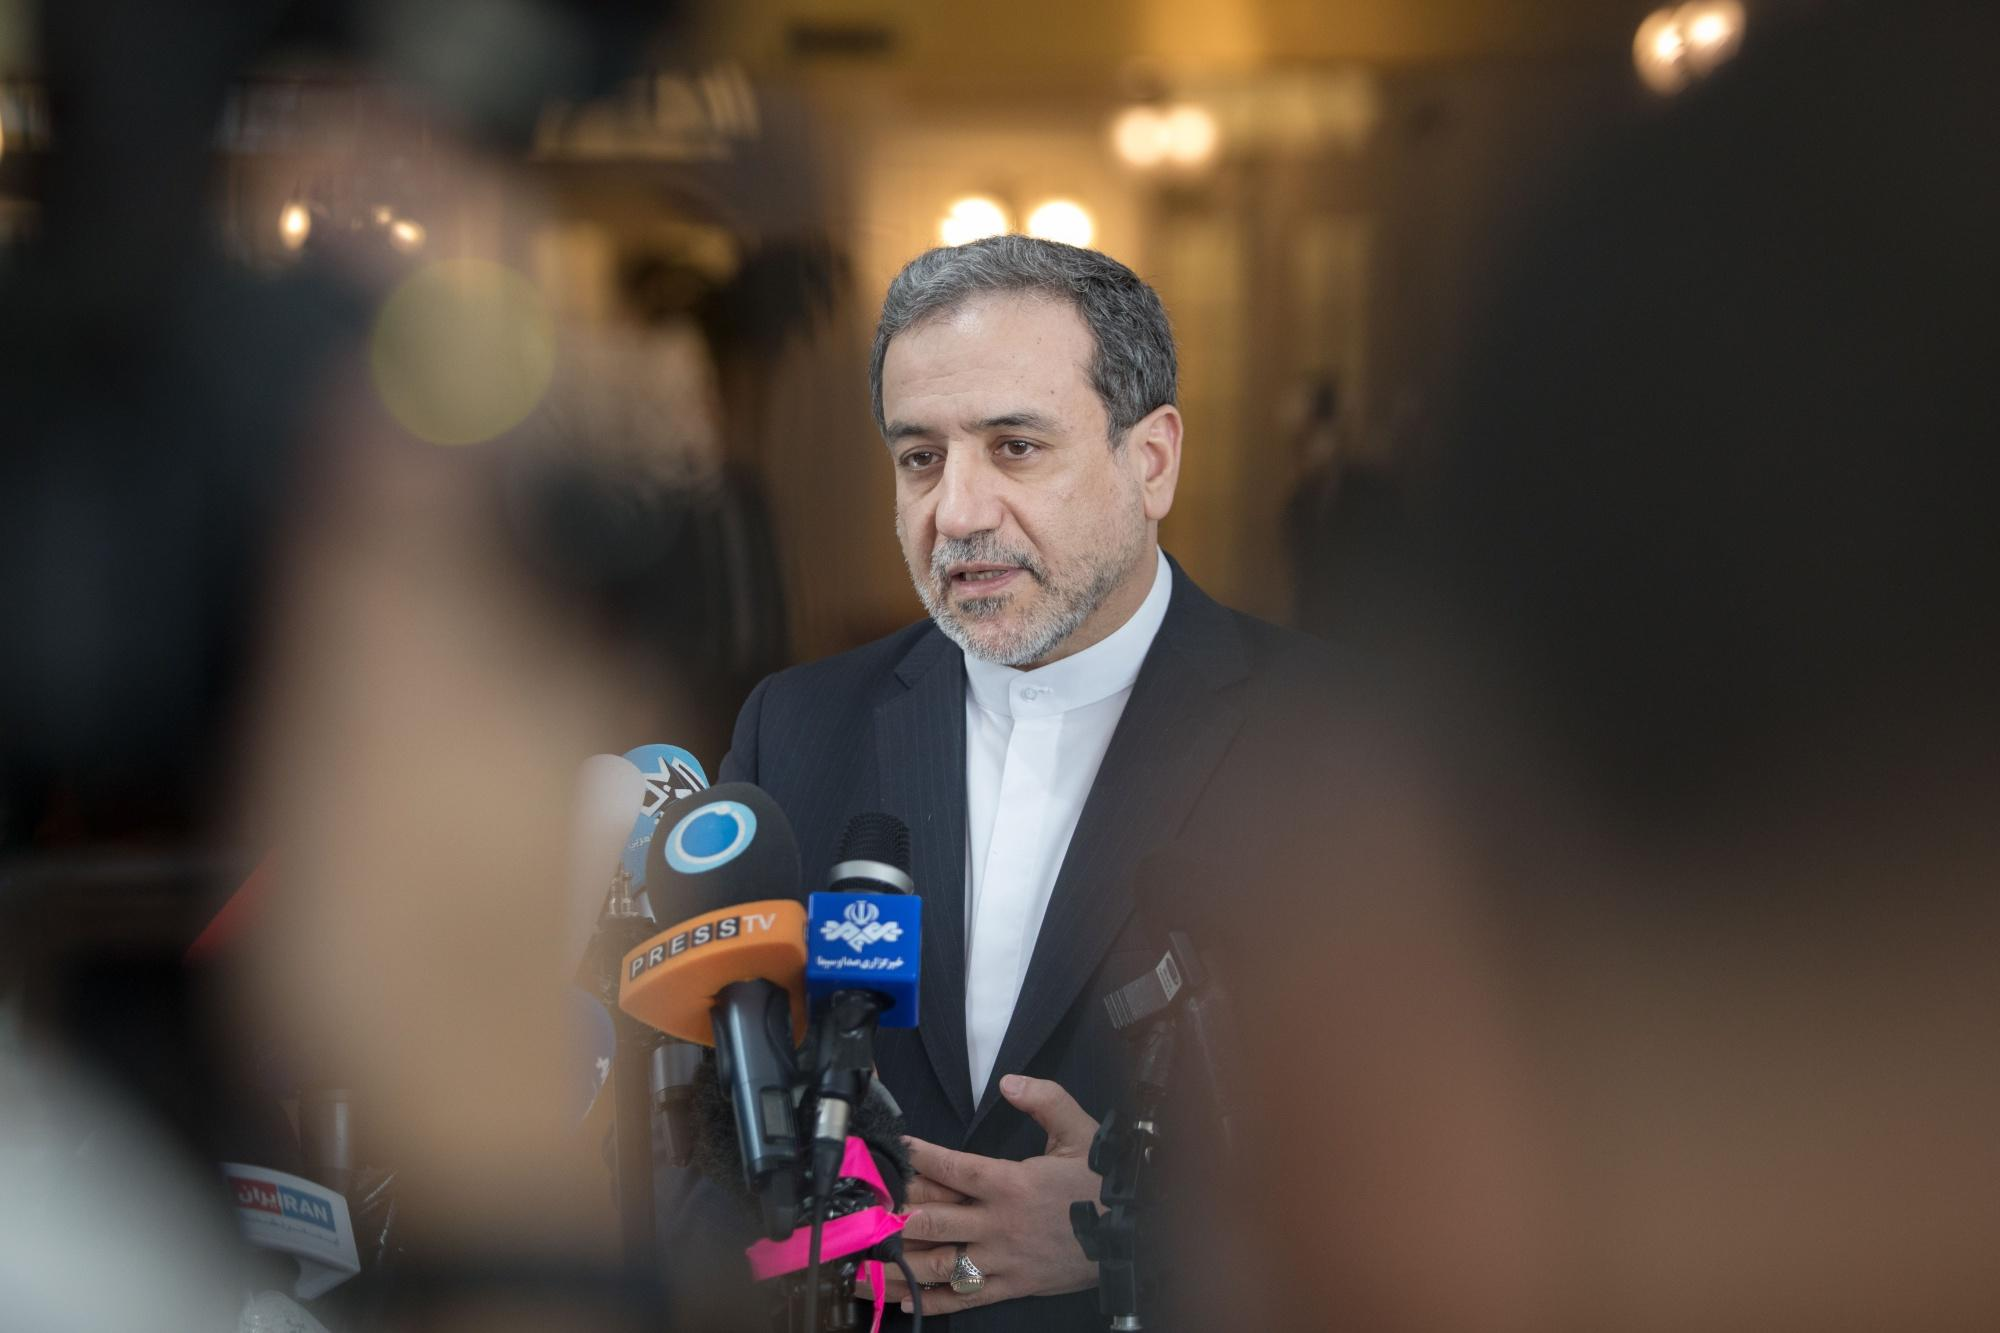 Iran Makes Big Diplomatic Push to Find Fix for Nuclear Staredown